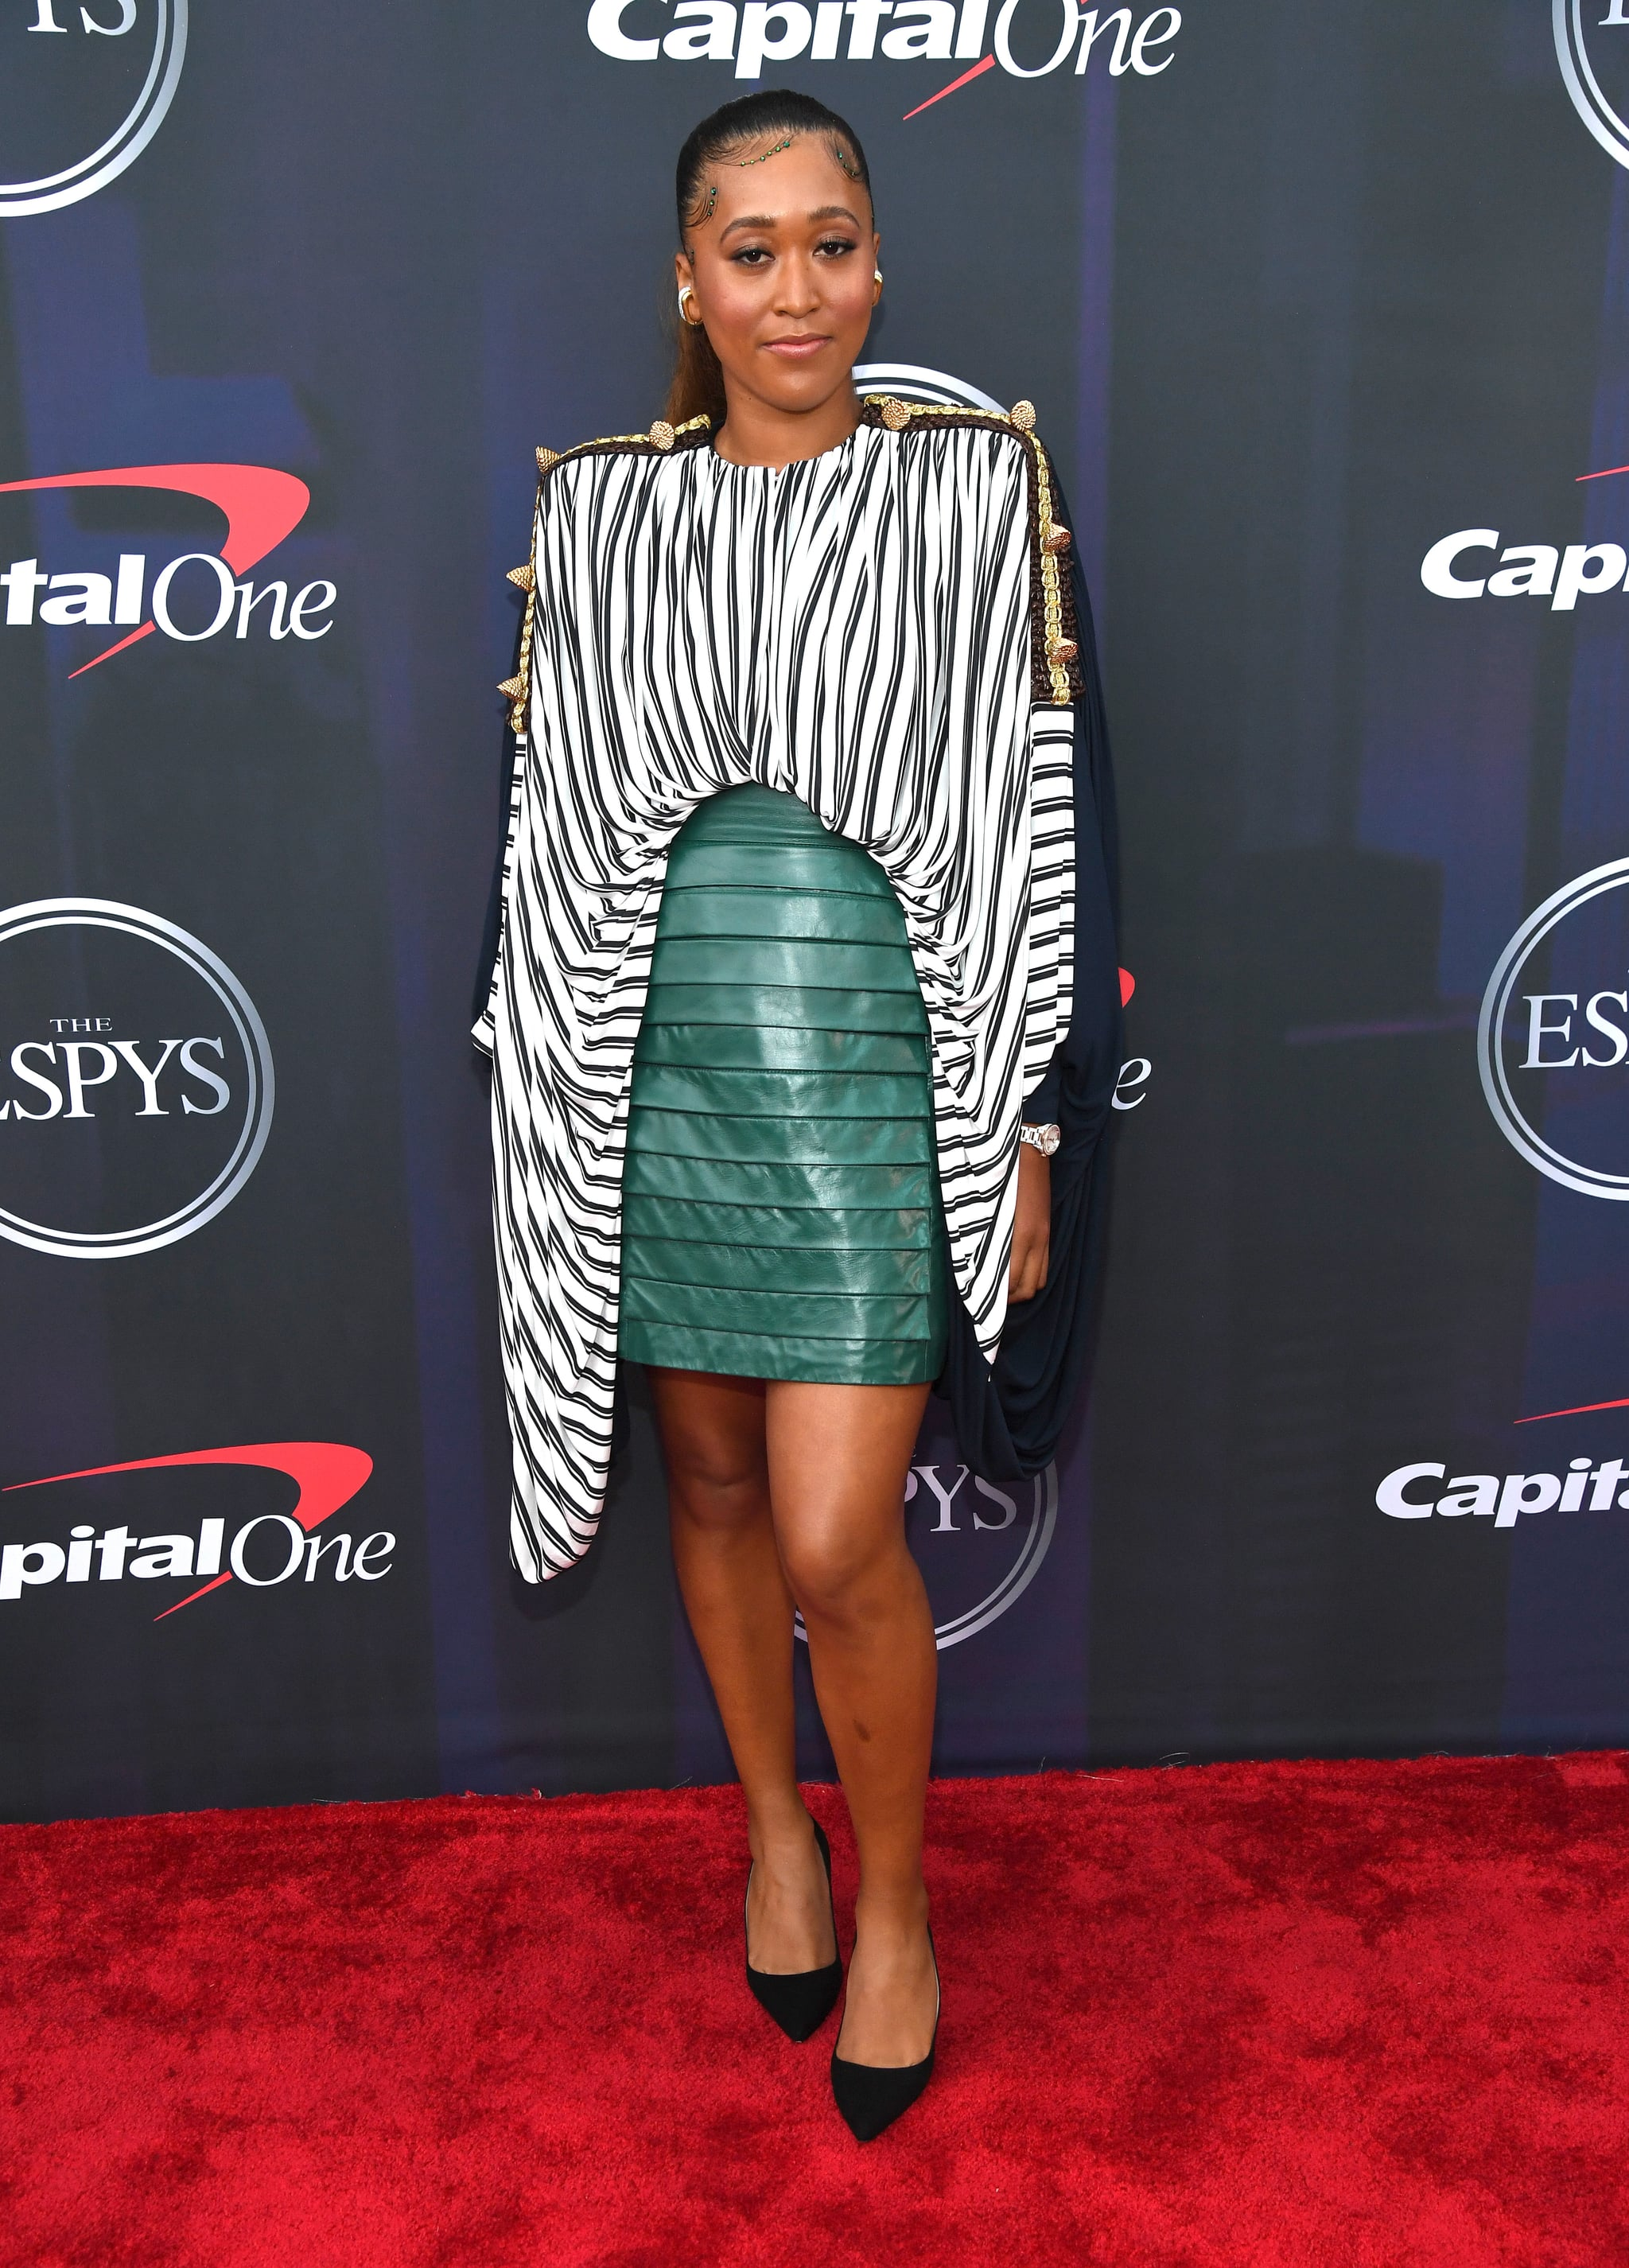 NEW YORK, NEW YORK - JULY 10:  Naomi Osaka attends the 2021 ESPY Awards at Rooftop At Pier 17 on July 10, 2021 in New York City.  (Photo by Kevin Mazur/Getty Images)